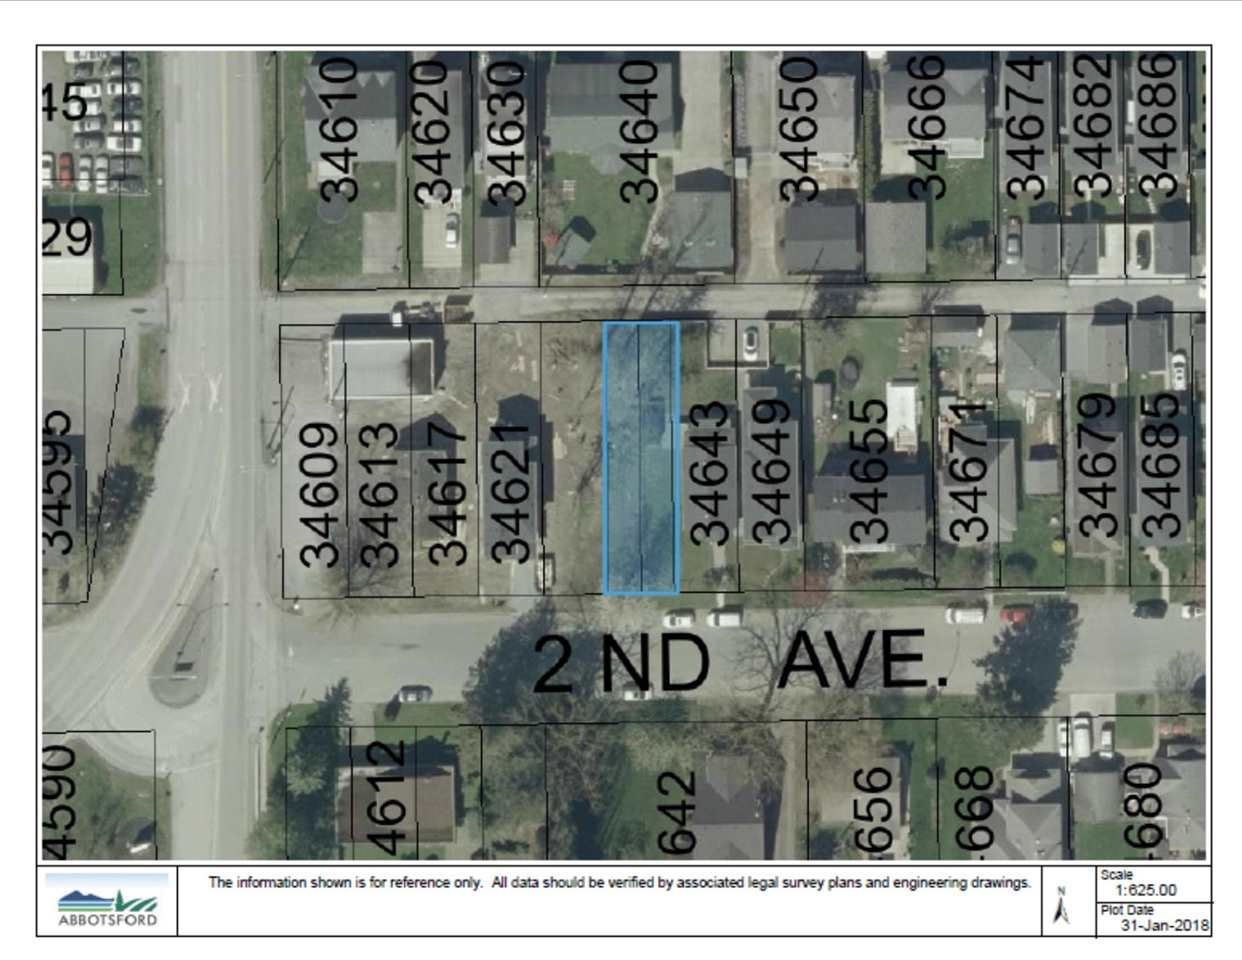 Build your new home in Huntingdon Village. Near US border in an area of newer homes, level lot with a back lane for parking that extra vehicle. 2 storey homes are permitted with a crawl space. Homes always sell quickly in the neighbourhood. Call any time.